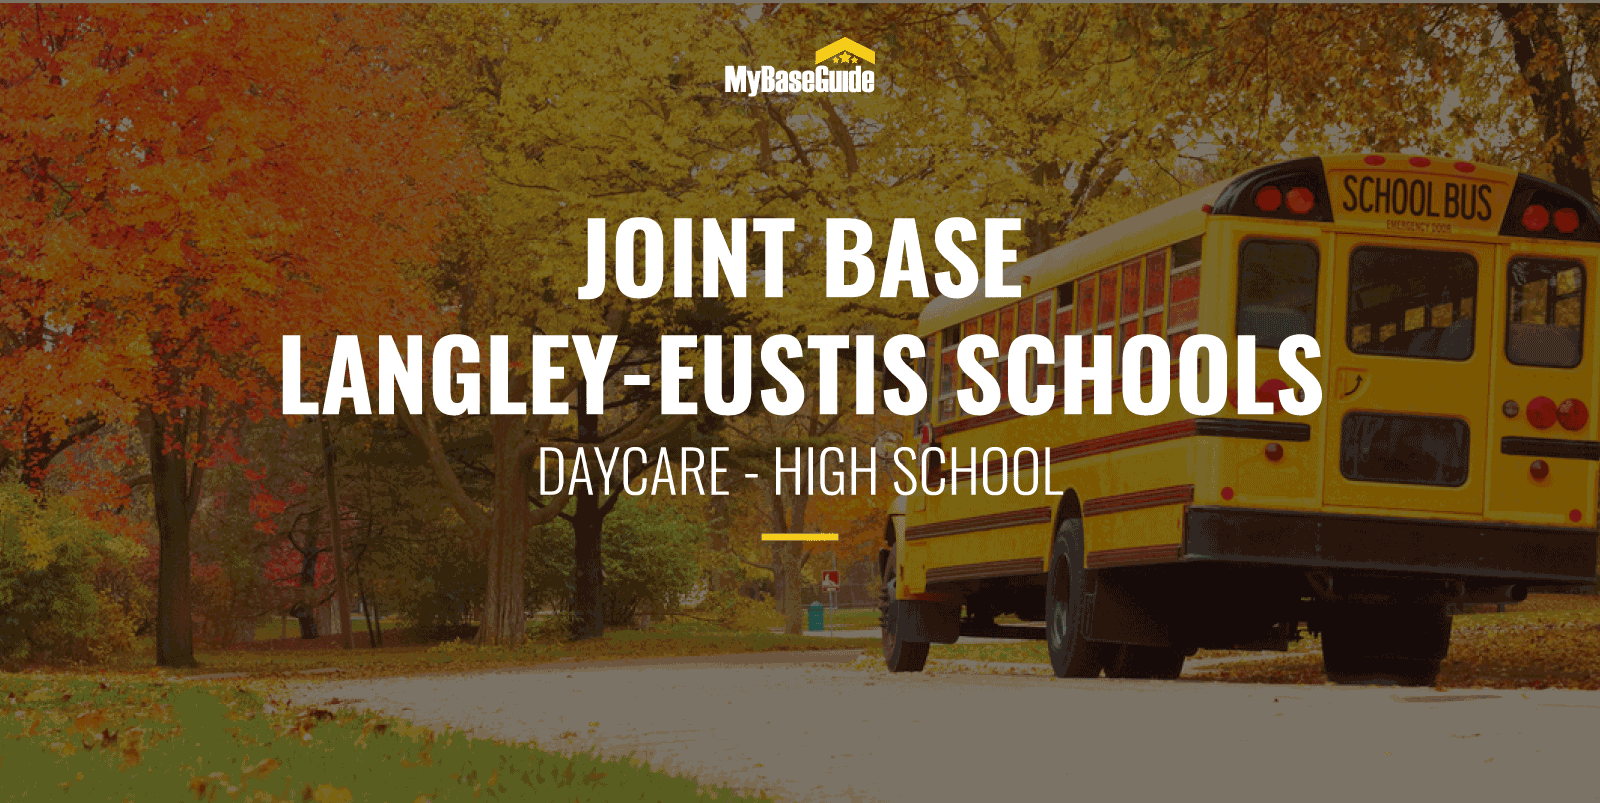 Joint Base Langley-Eustis Schools: Daycare - High School